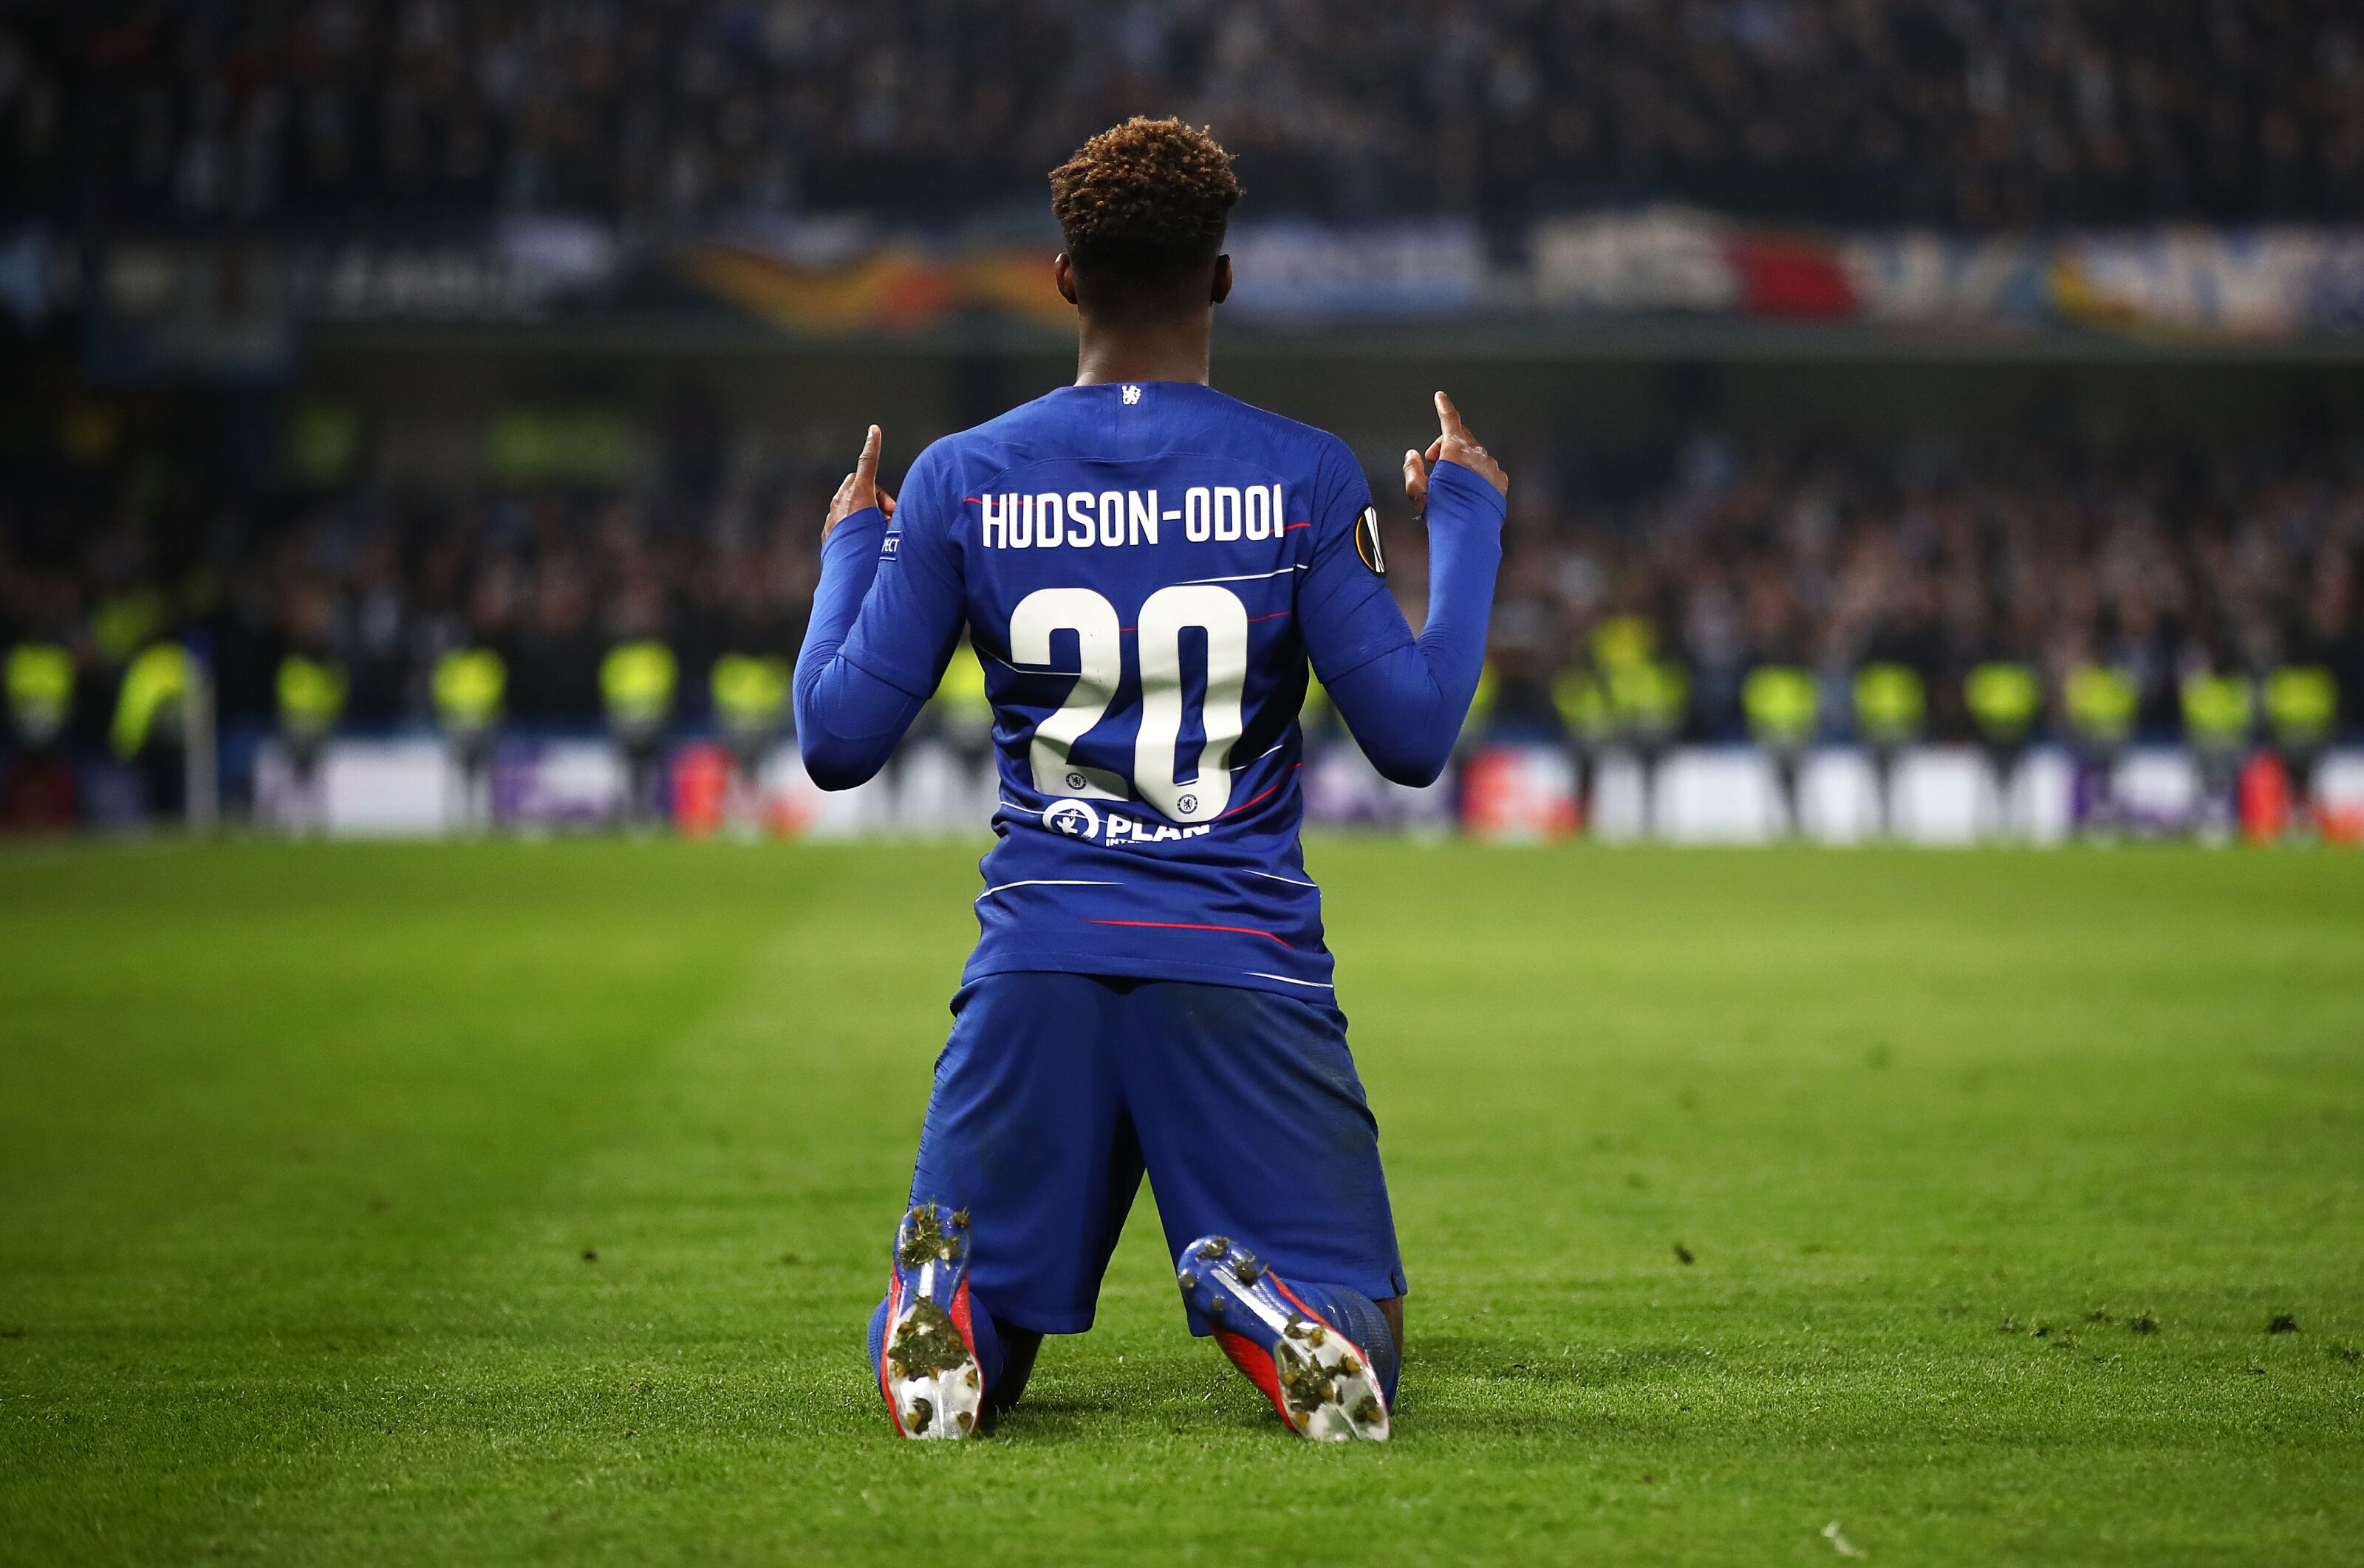 Chelsea Tactics and Transfers: Are CFC the last to know about Hudson-Odoi?